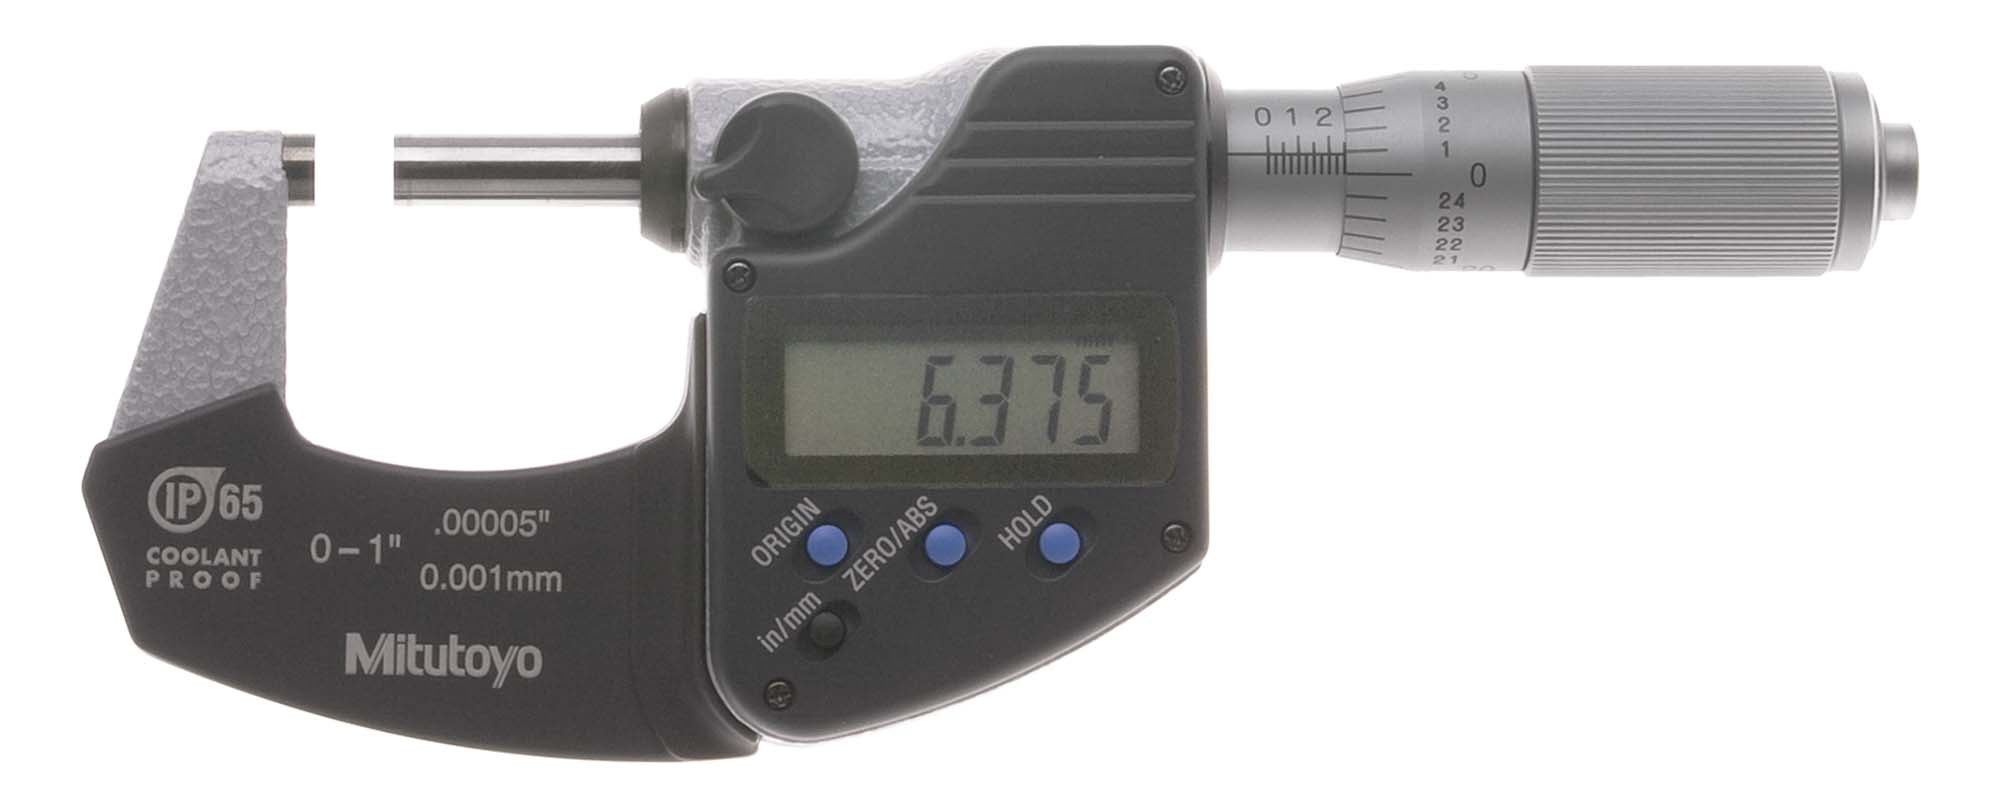 Mitutoyo LCD Electronic Micrometer